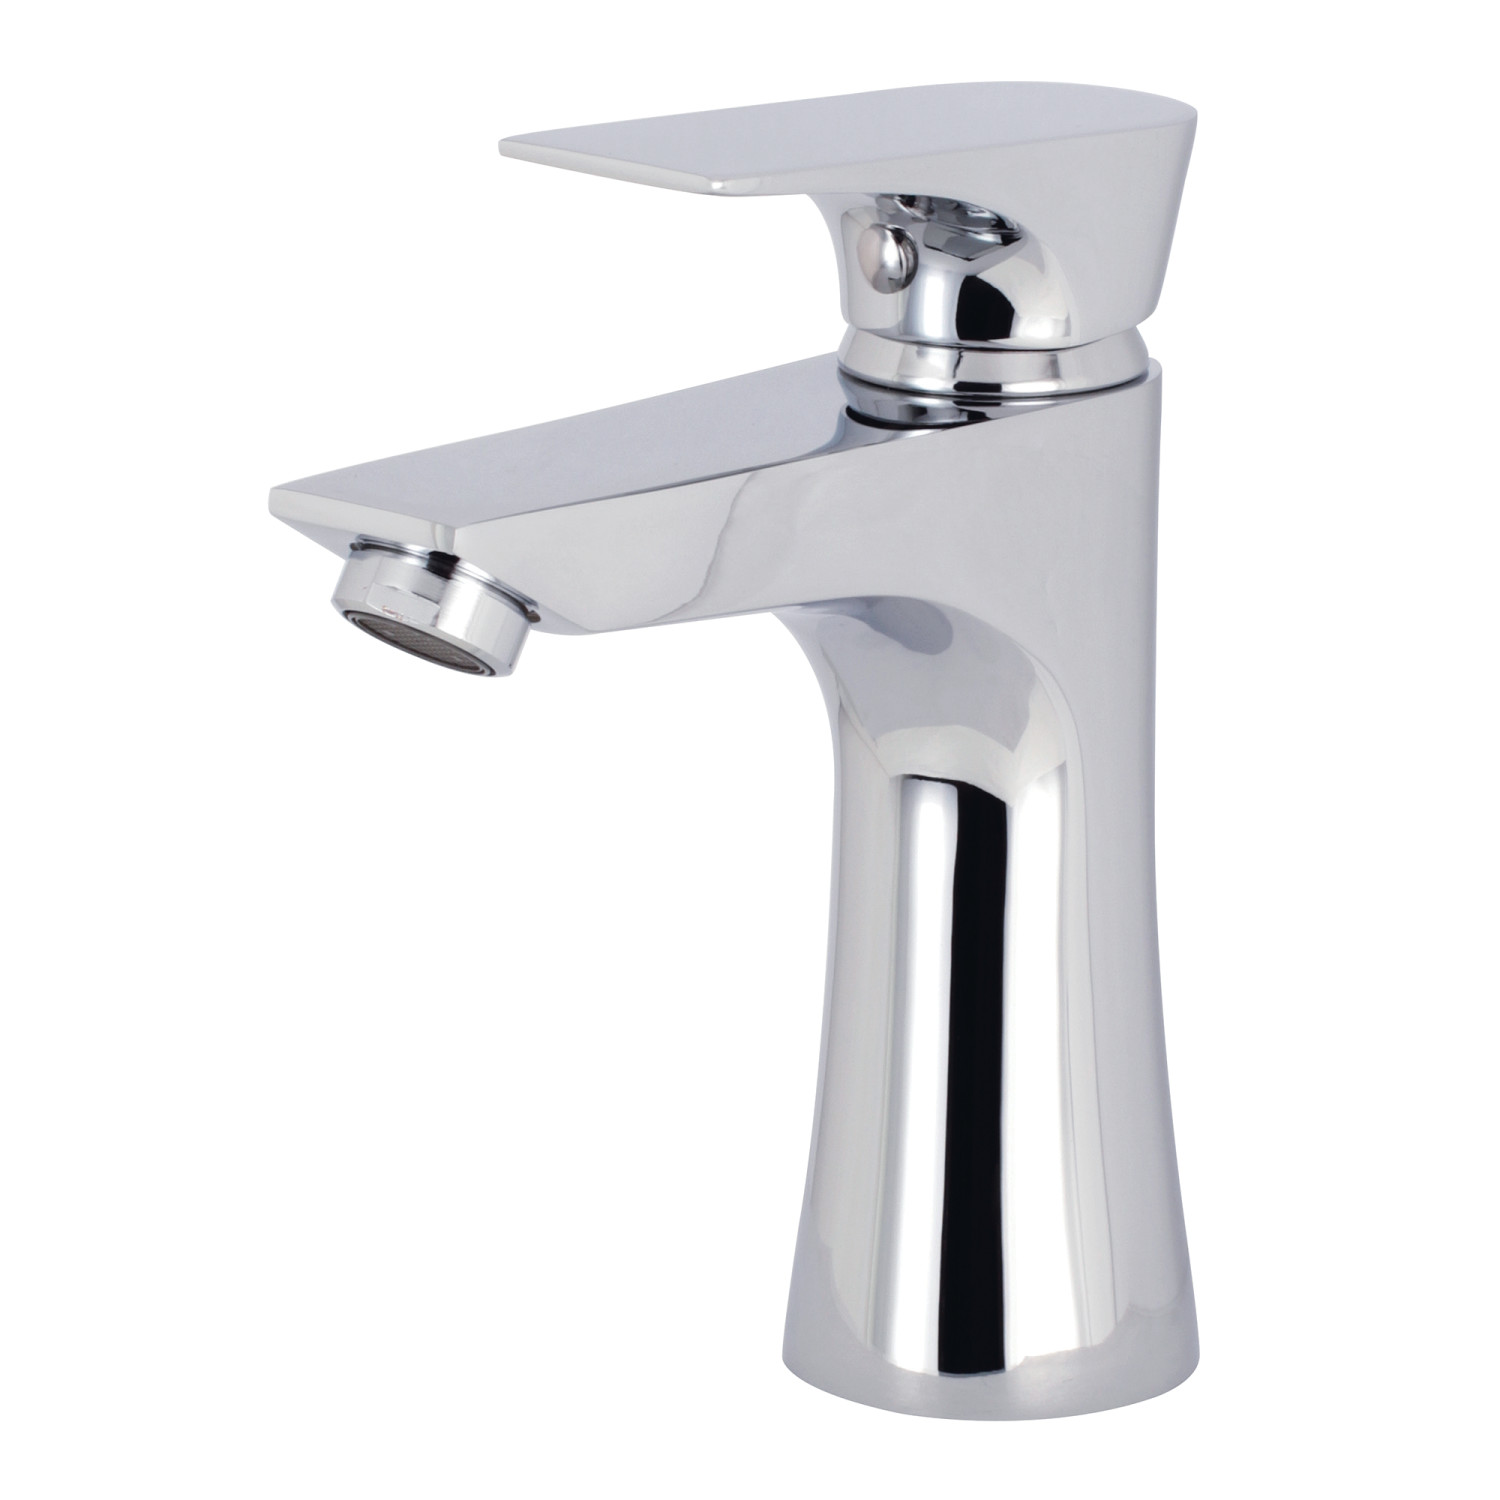 Single-Handle 1-Hole Deck Mounted Bathroom Faucet in Polished Chrome with 5 Finish Option